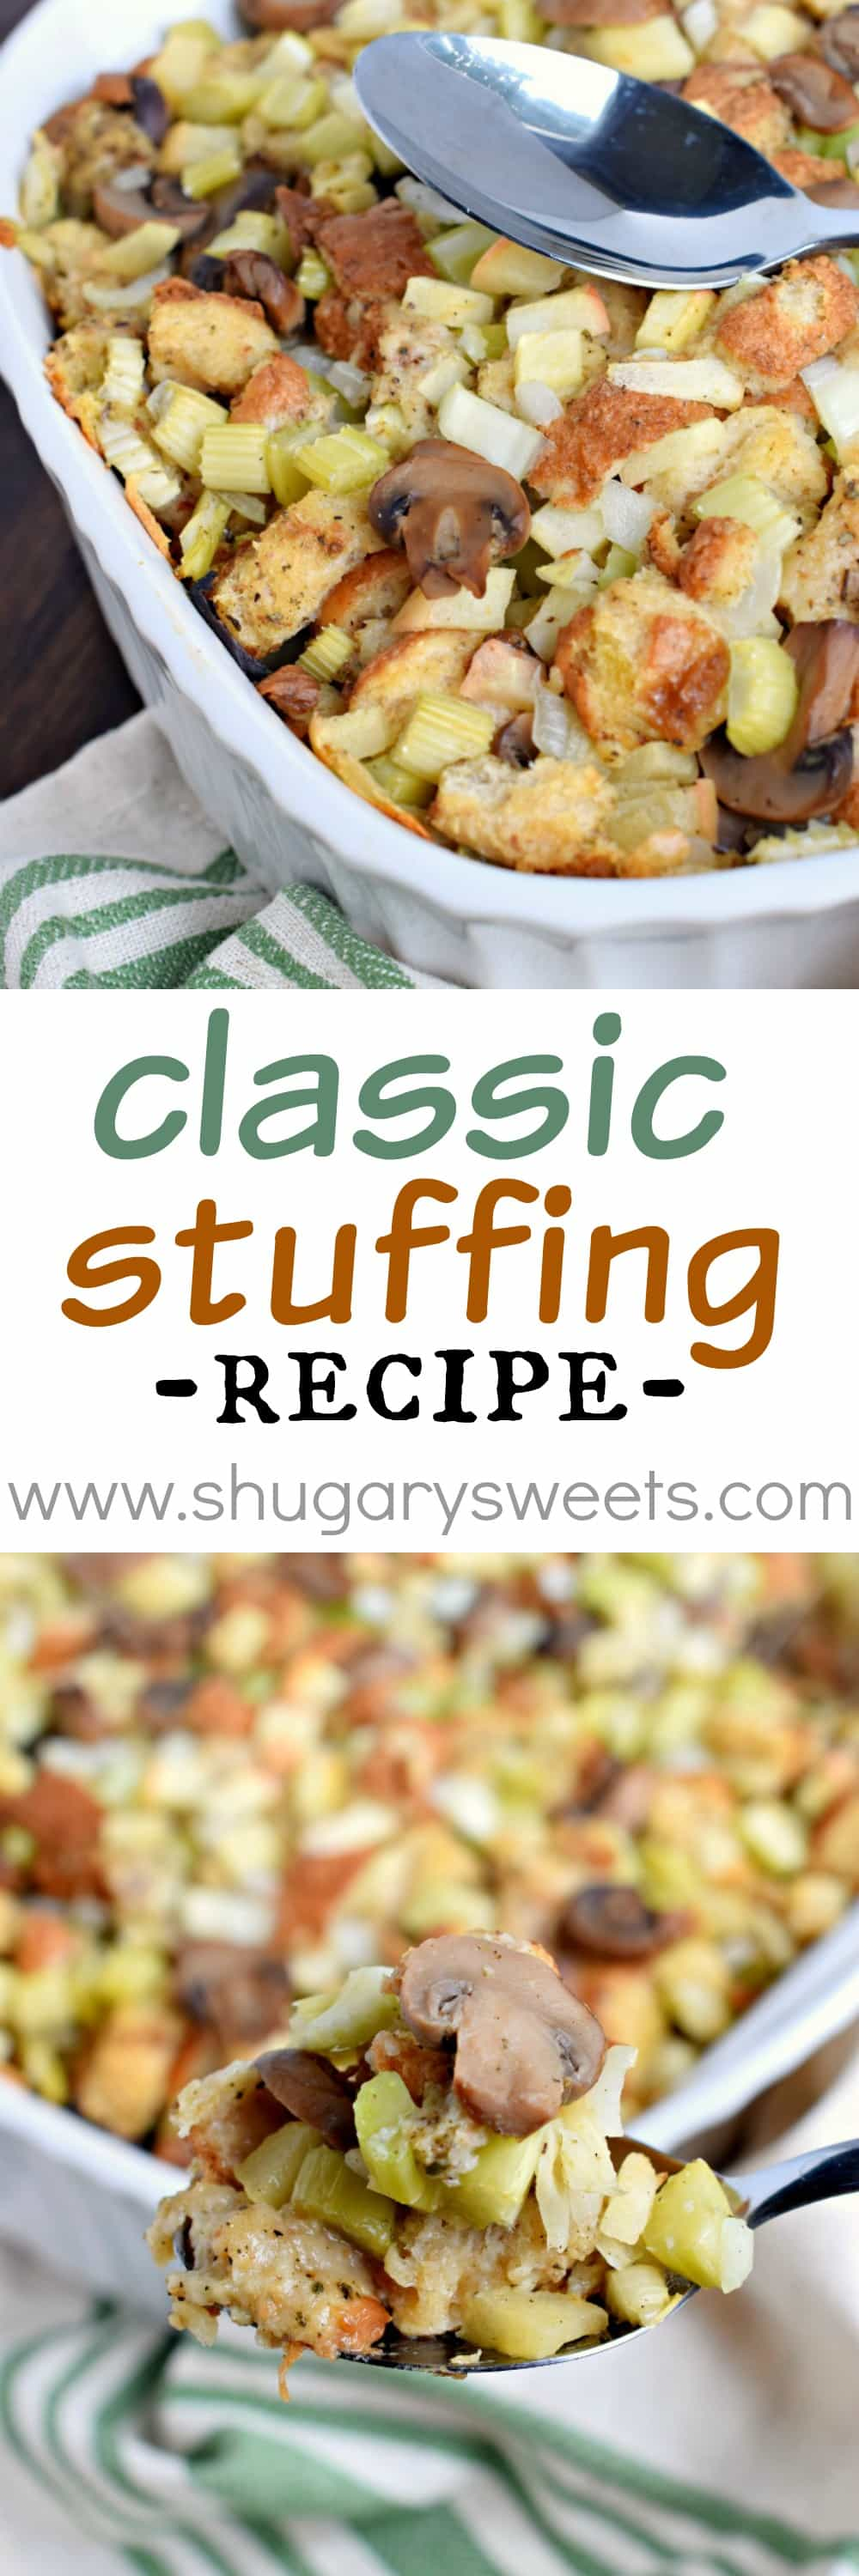 What is a recipe for classic bread stuffing?